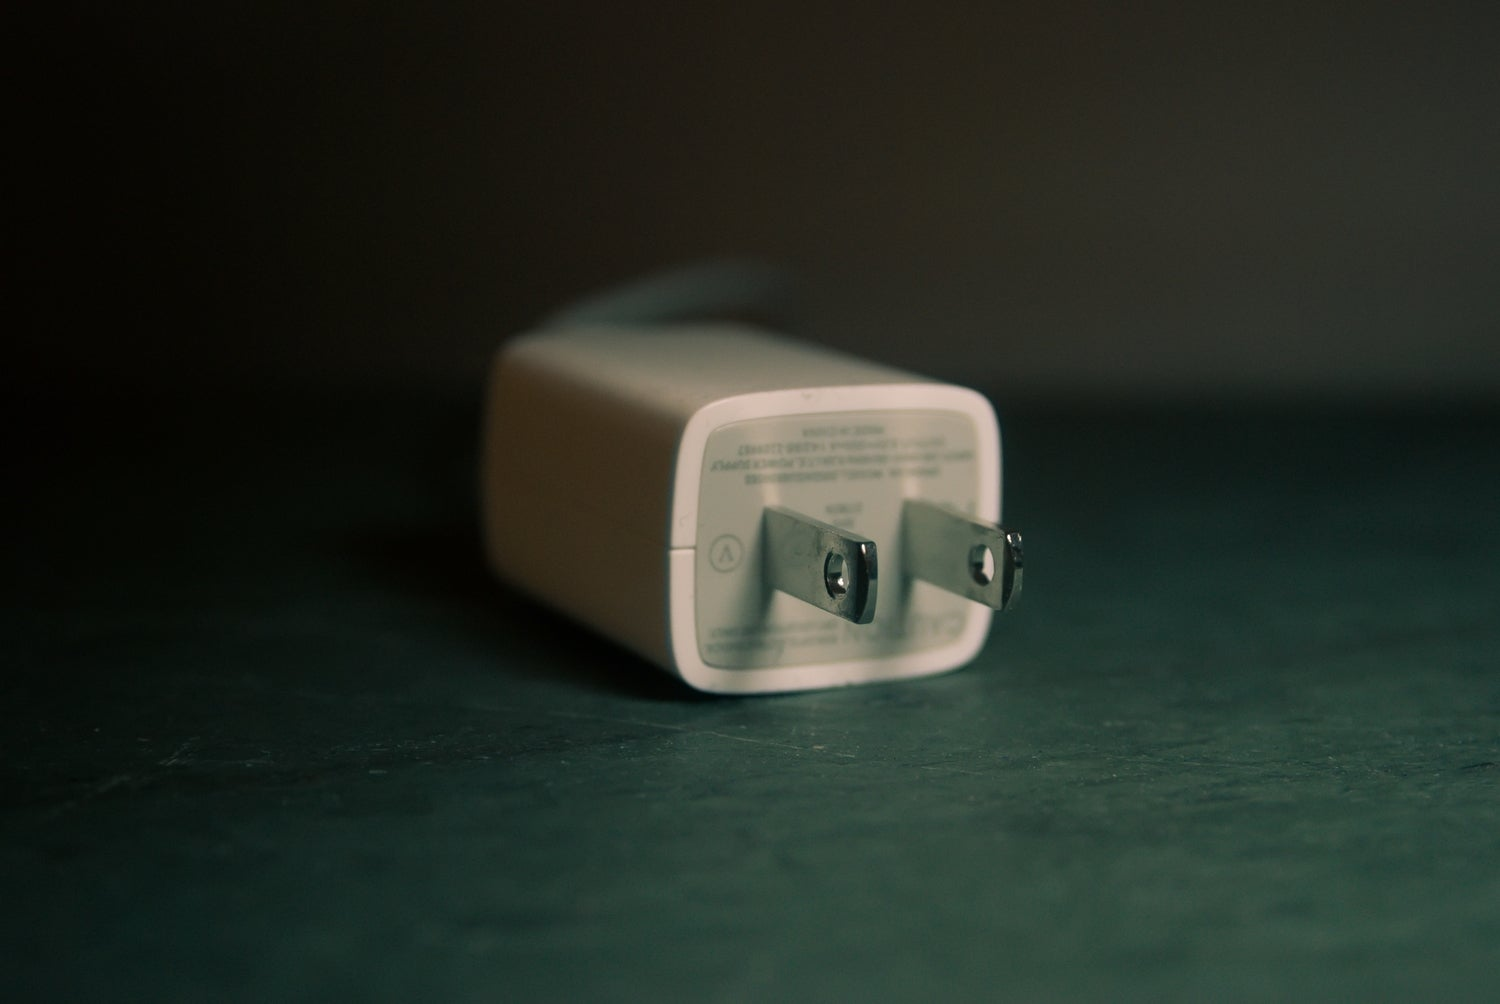 How to efficiently charge your devices